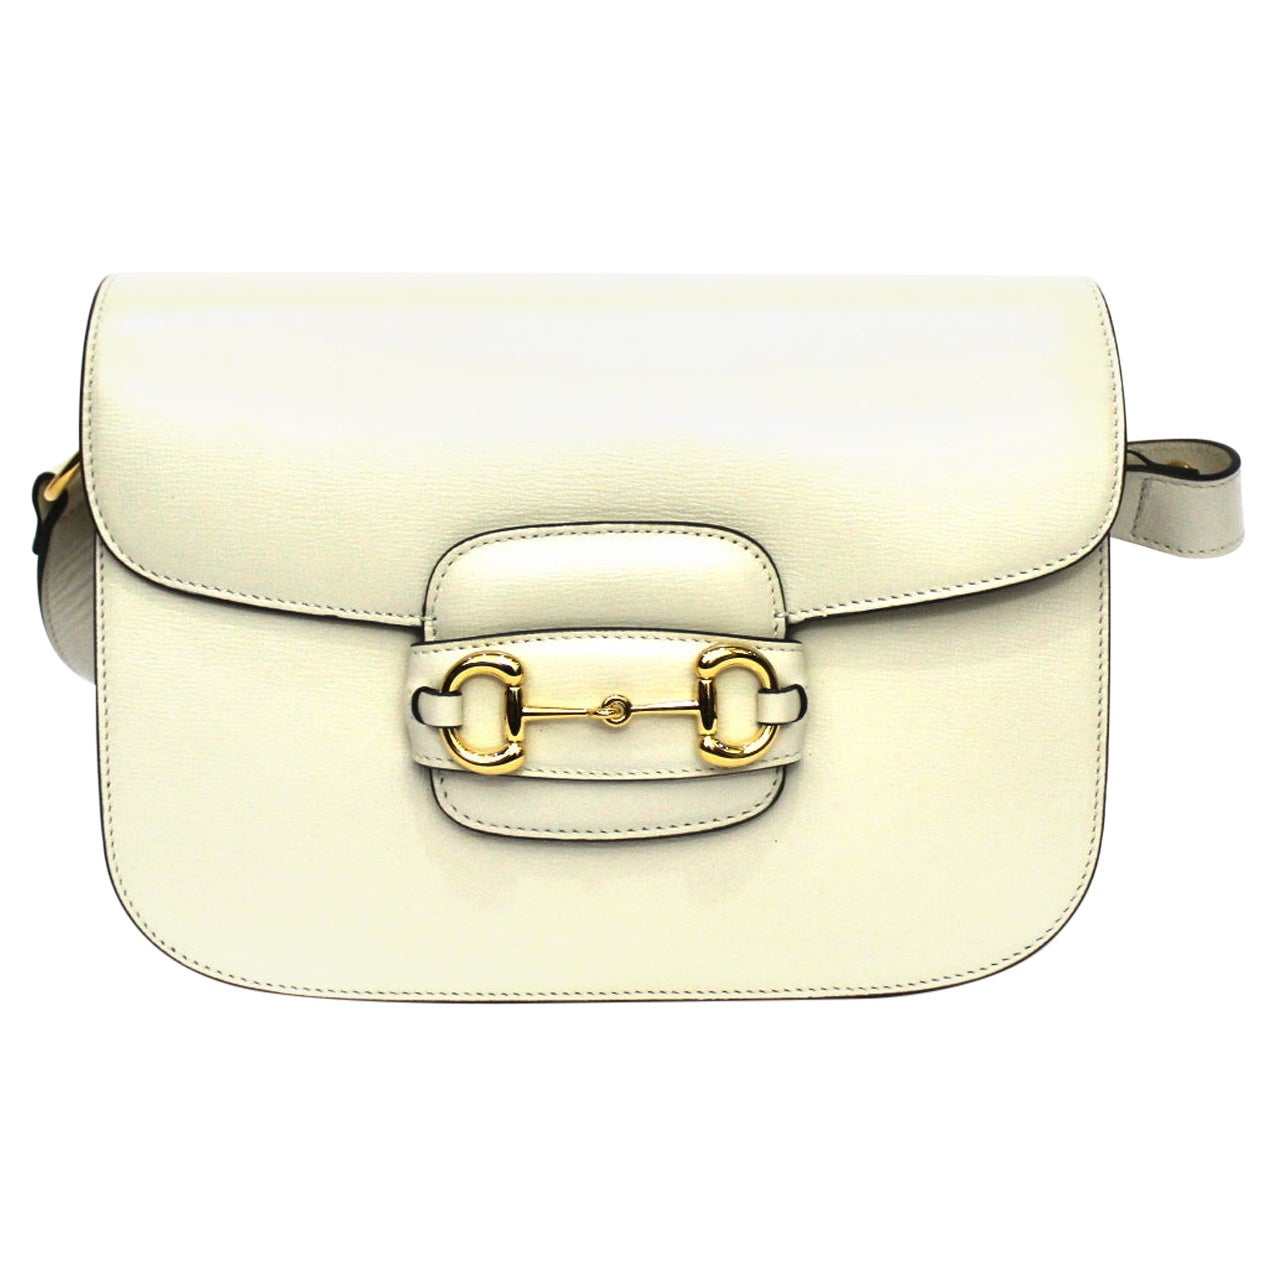 Gucci White Leather 1955 Horsebit Bag